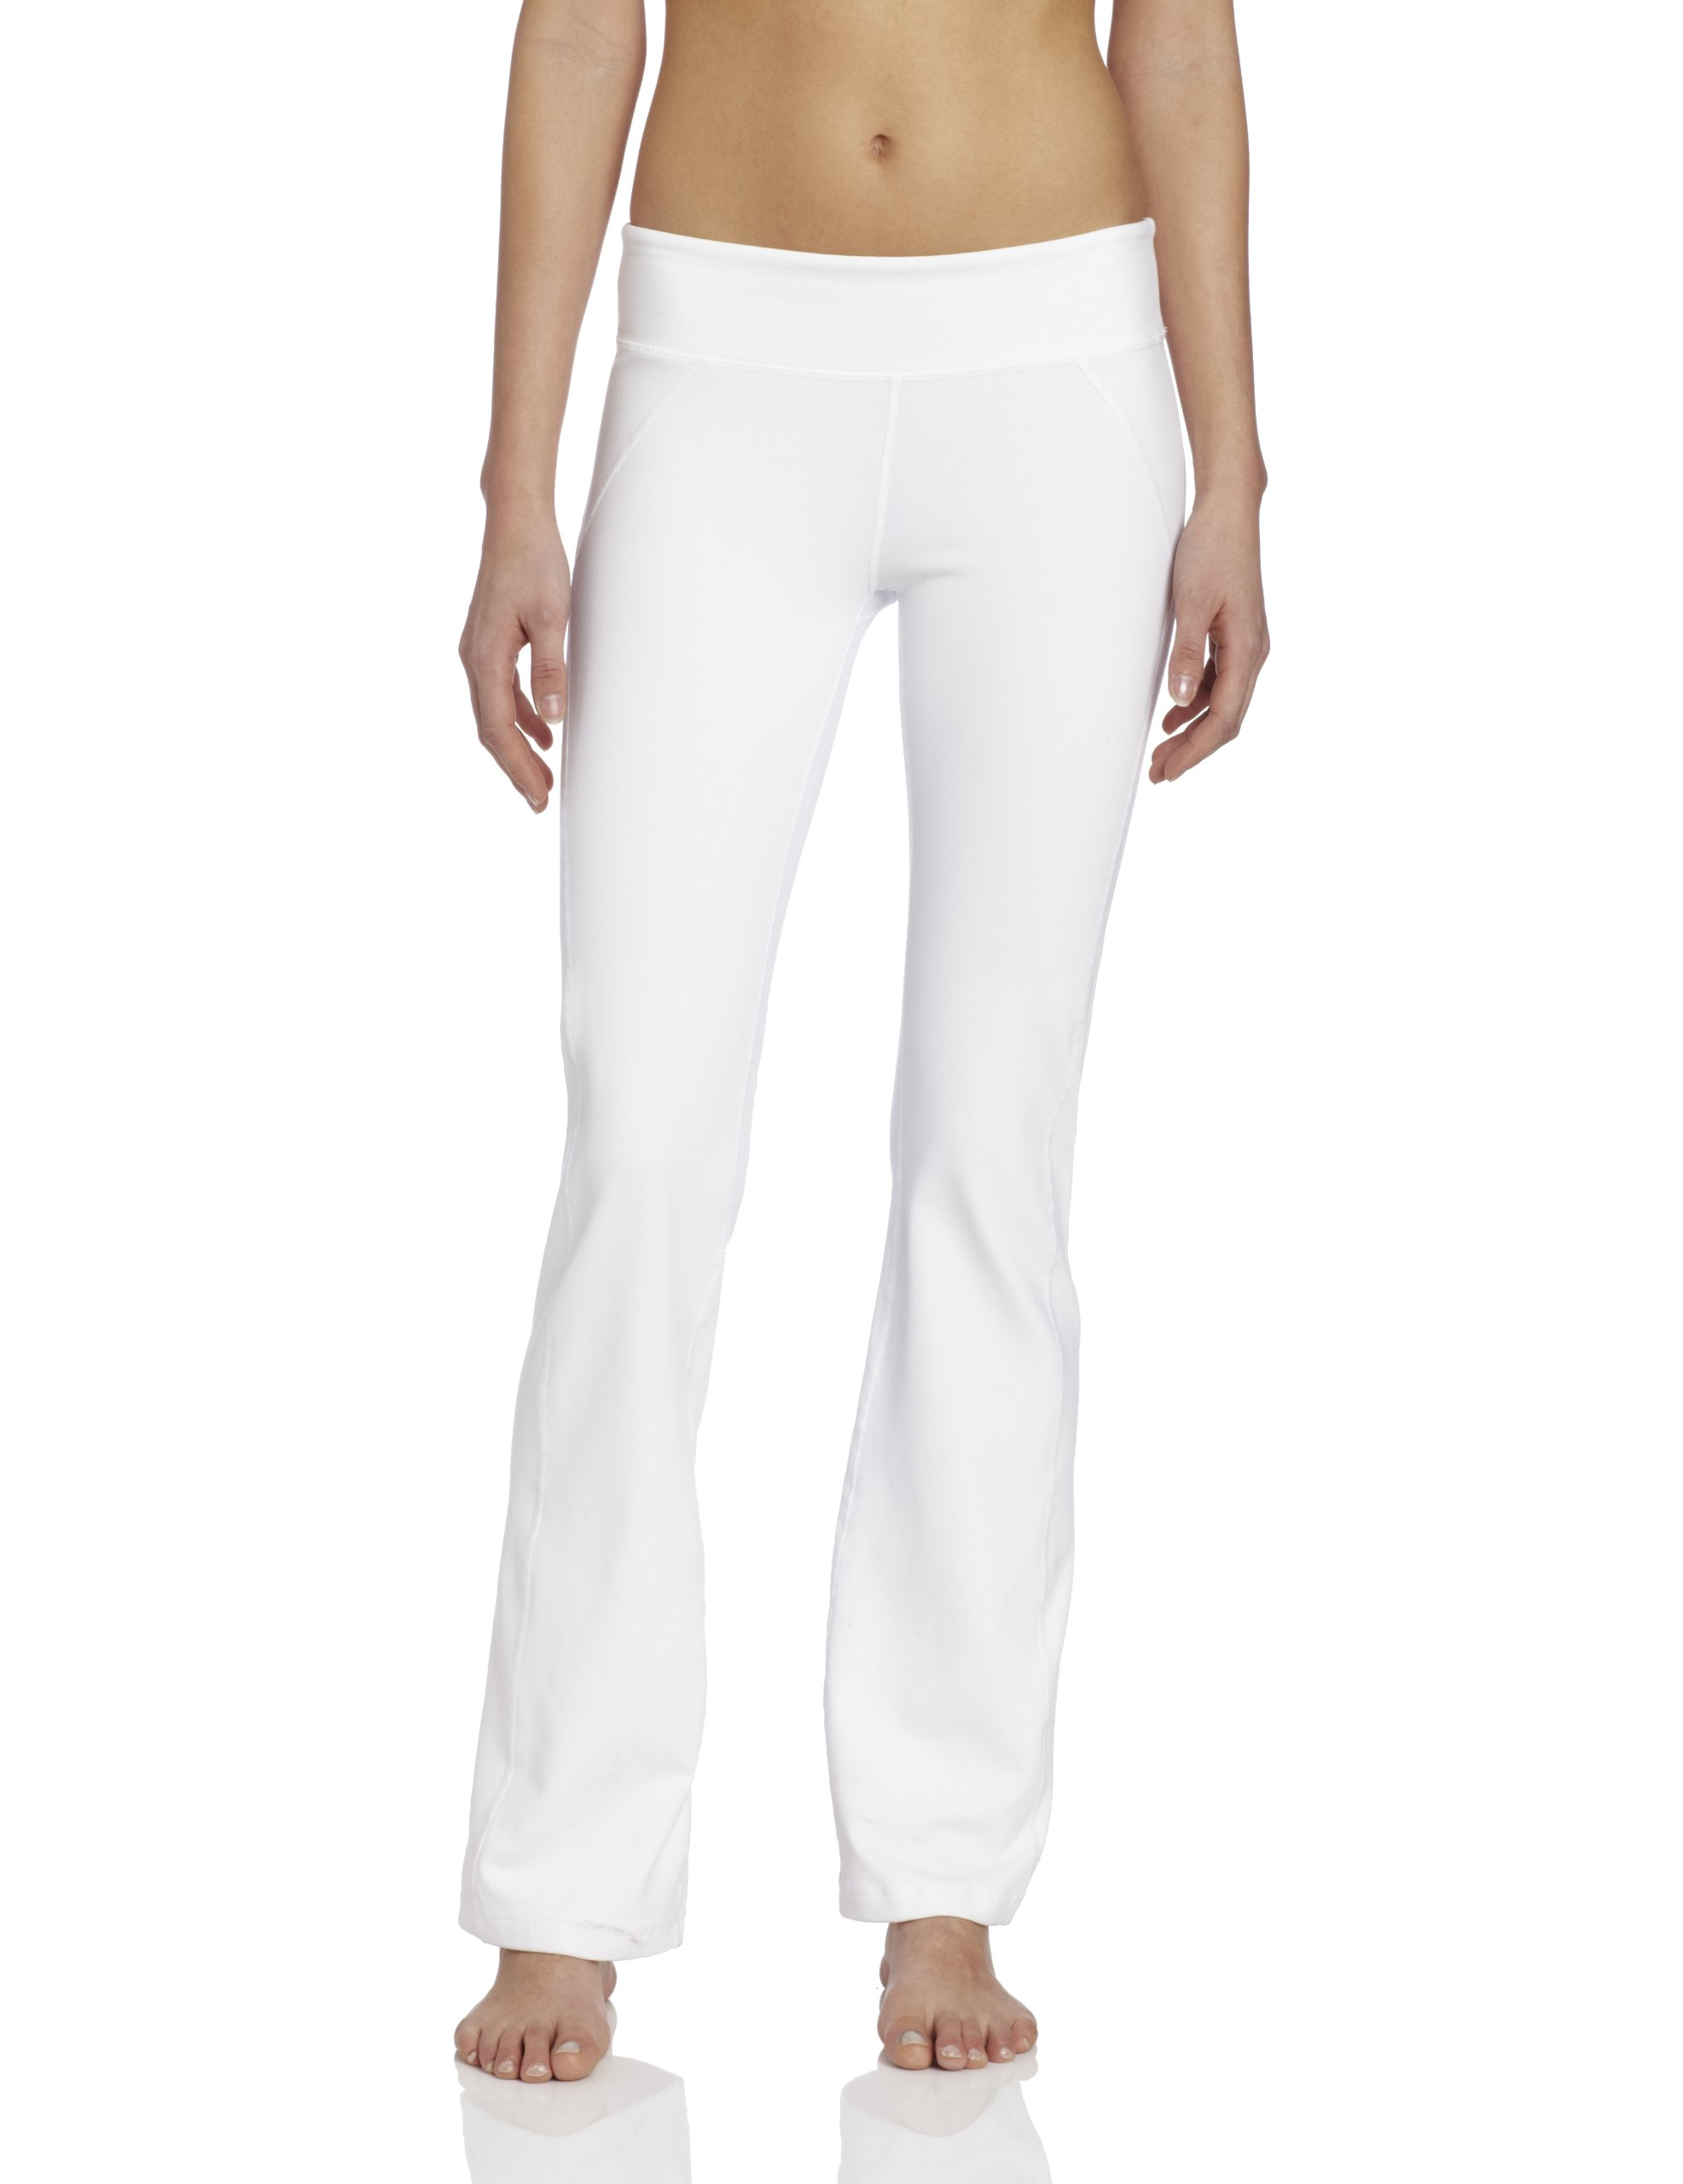 Soybu Women's Killer Caboose Pant, White, X-Small